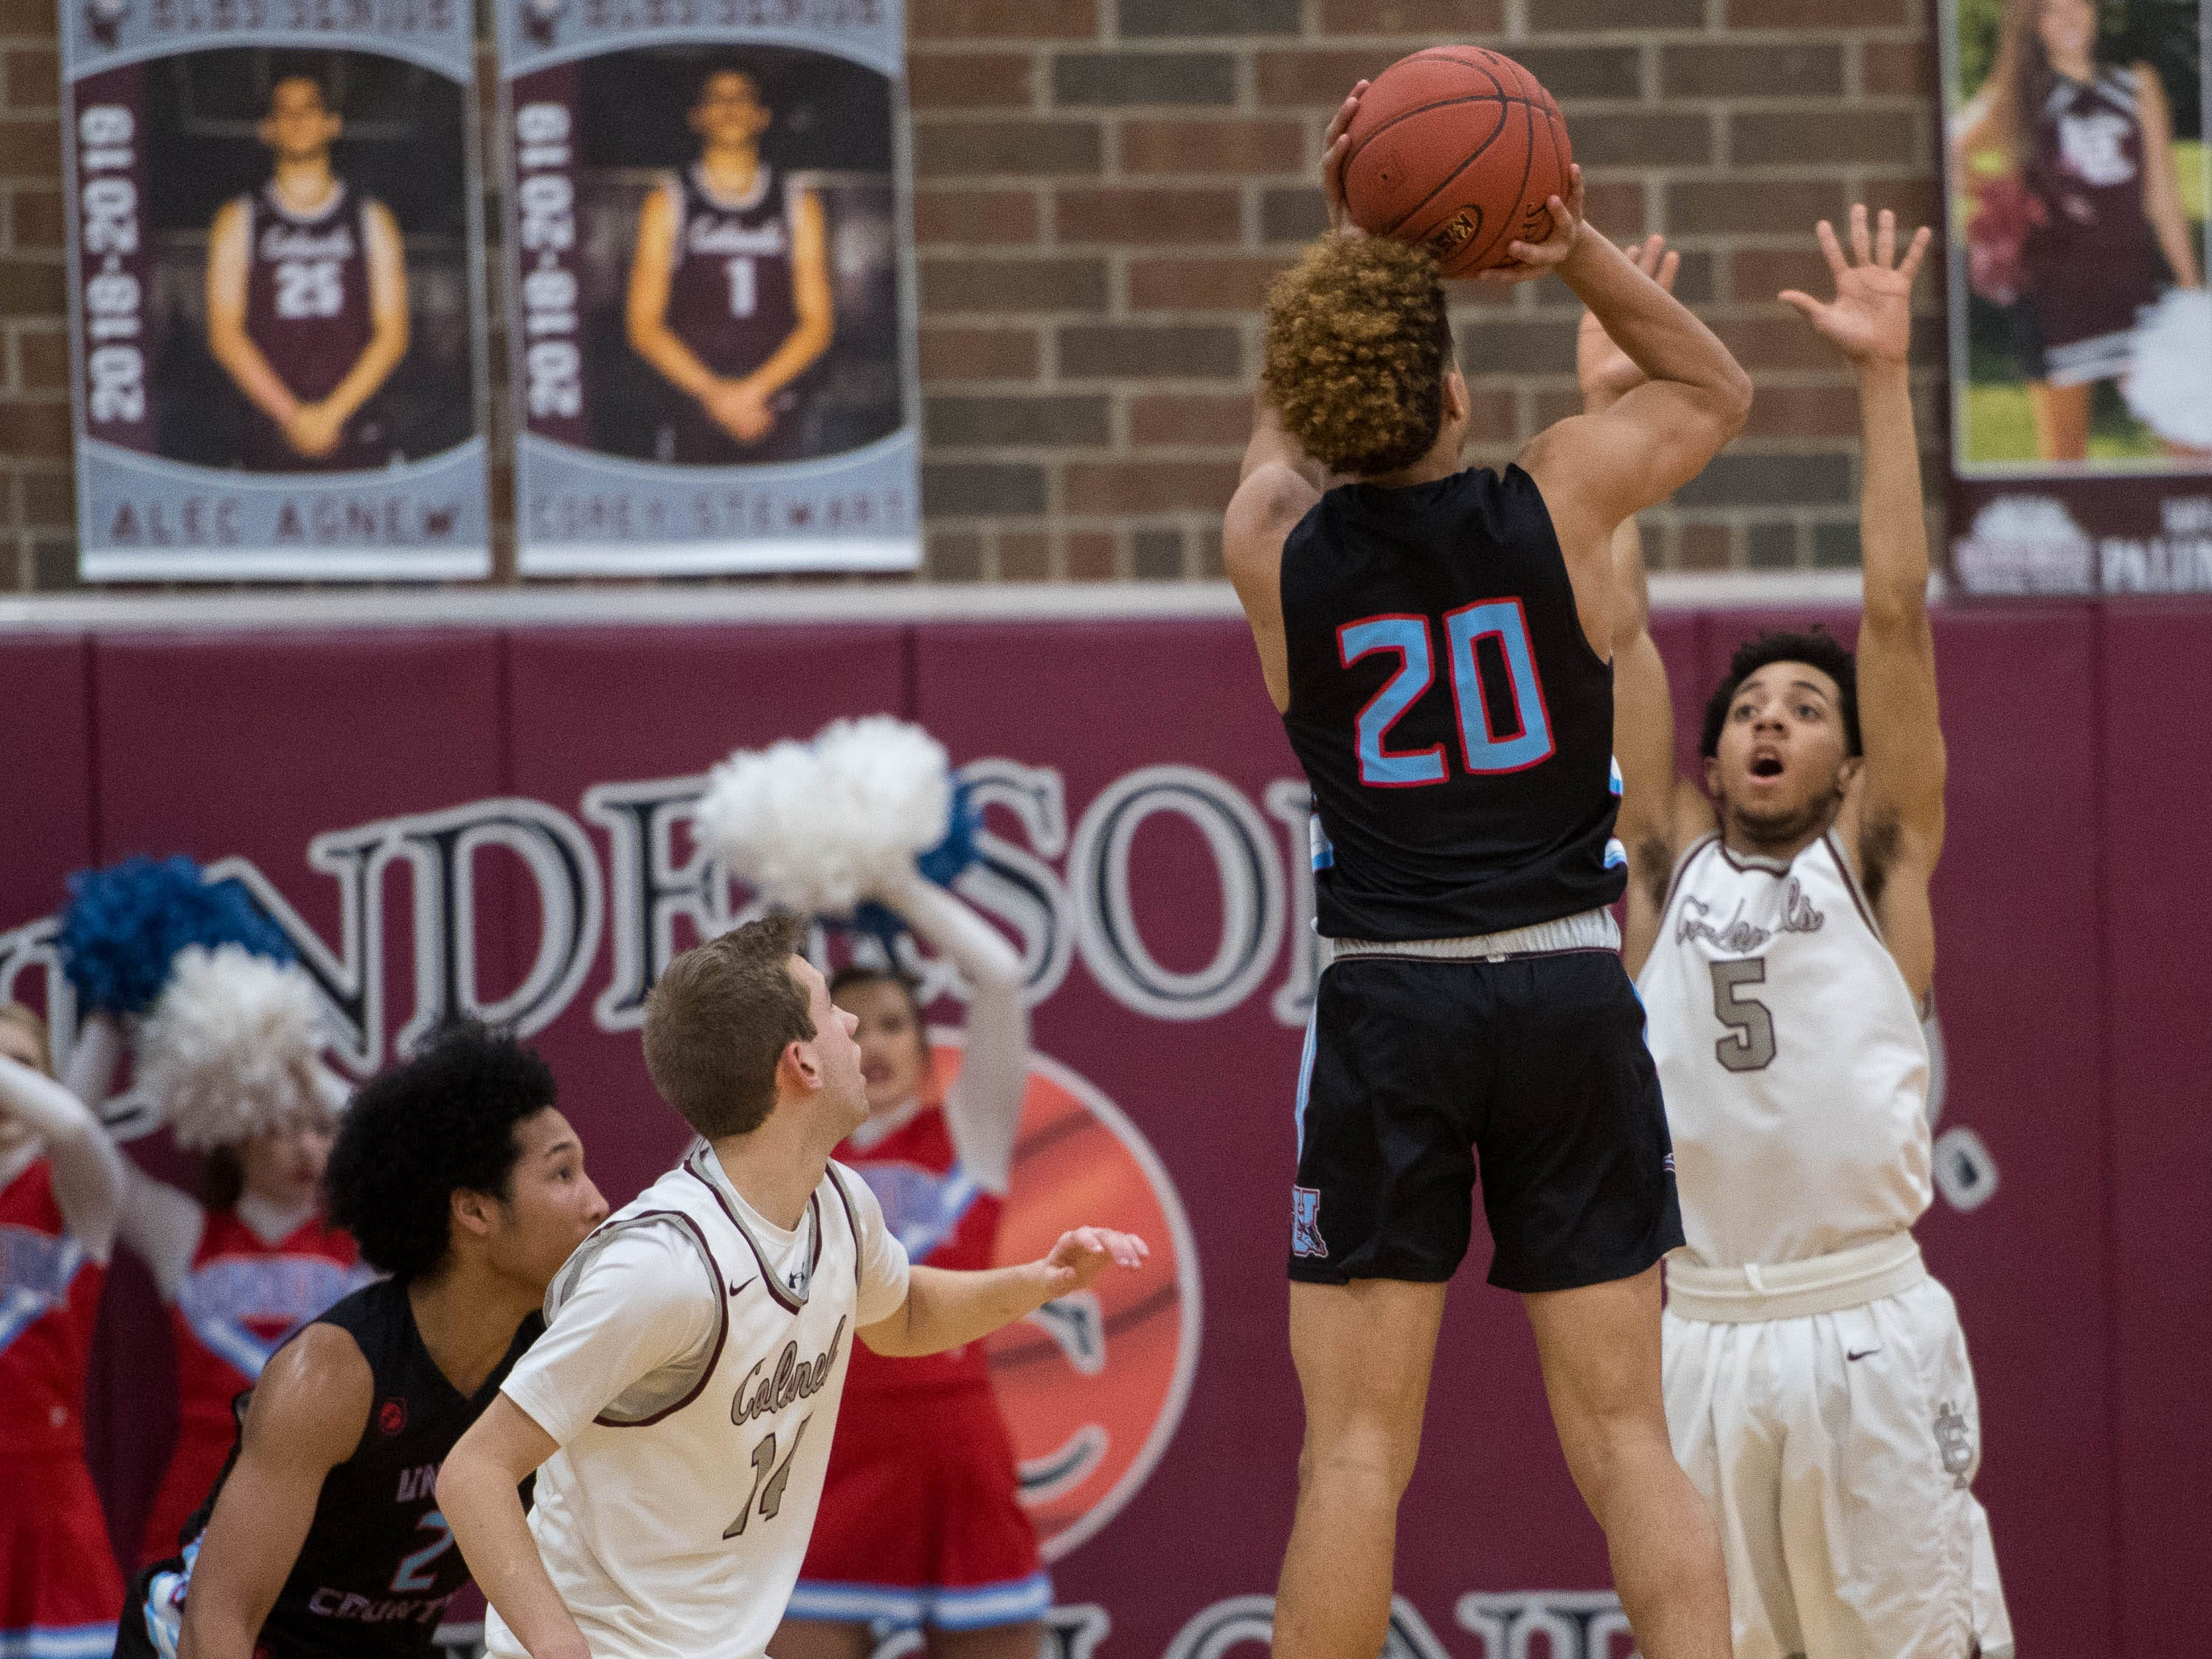 Union County's Kale Gaither (20) shoots over Henderson's Edmund Brooks (5) as district rivals Union County Braves play the Henderson County Colonels at Colonel Gym in Henderson Tuesday, January 29, 2019.